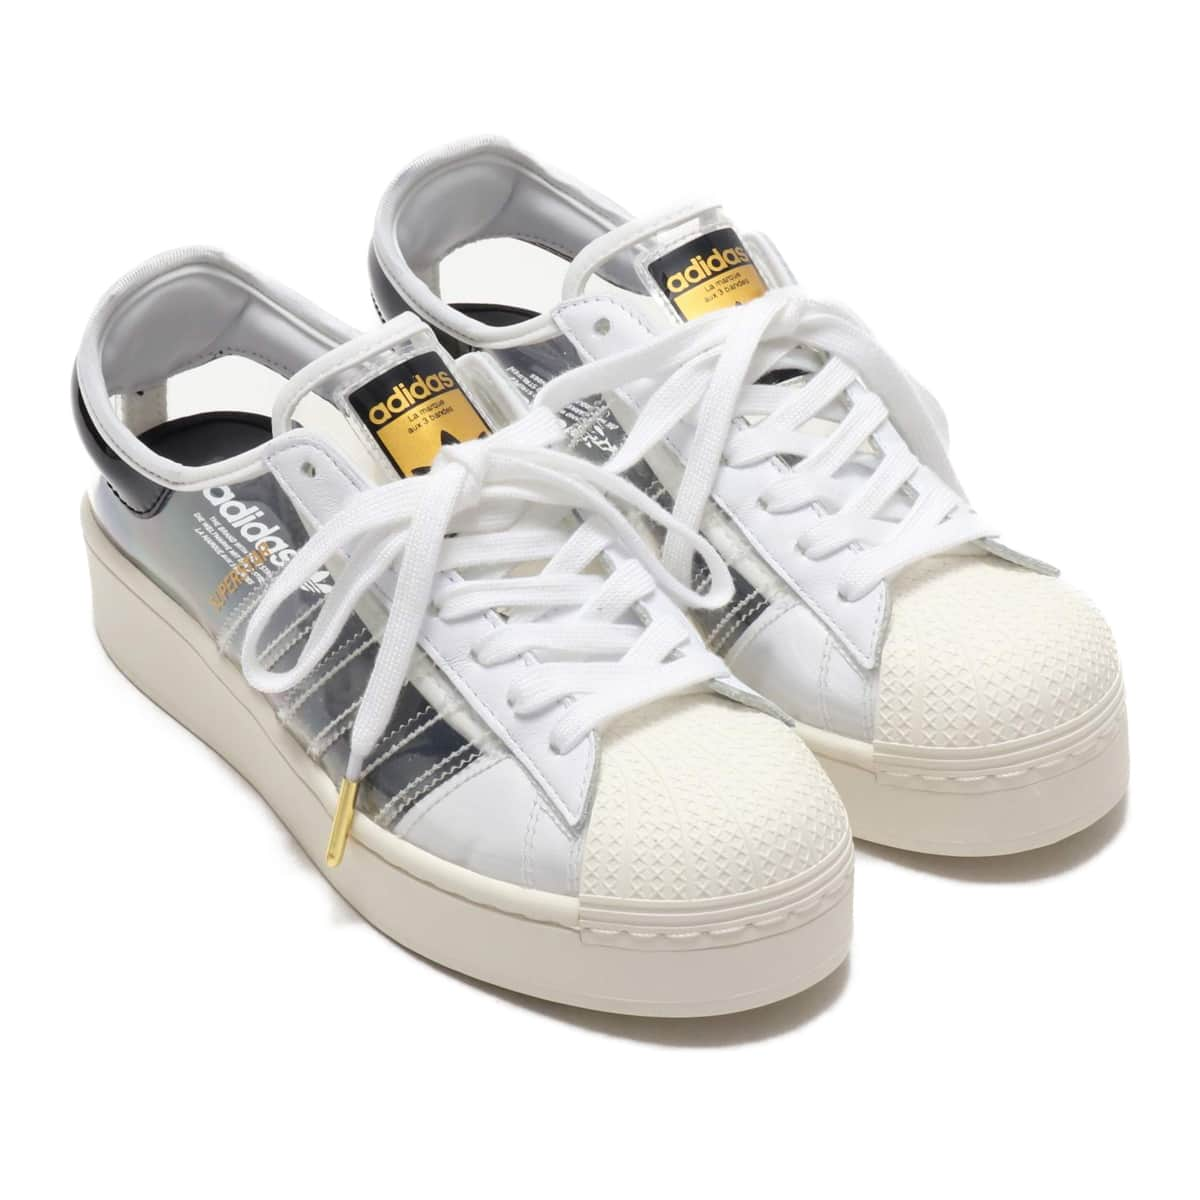 adidas SUPERSTARBOLD W FOOTWEAR WHITE/OFF WHITE/CORE BLACK 20SS-S_photo_large